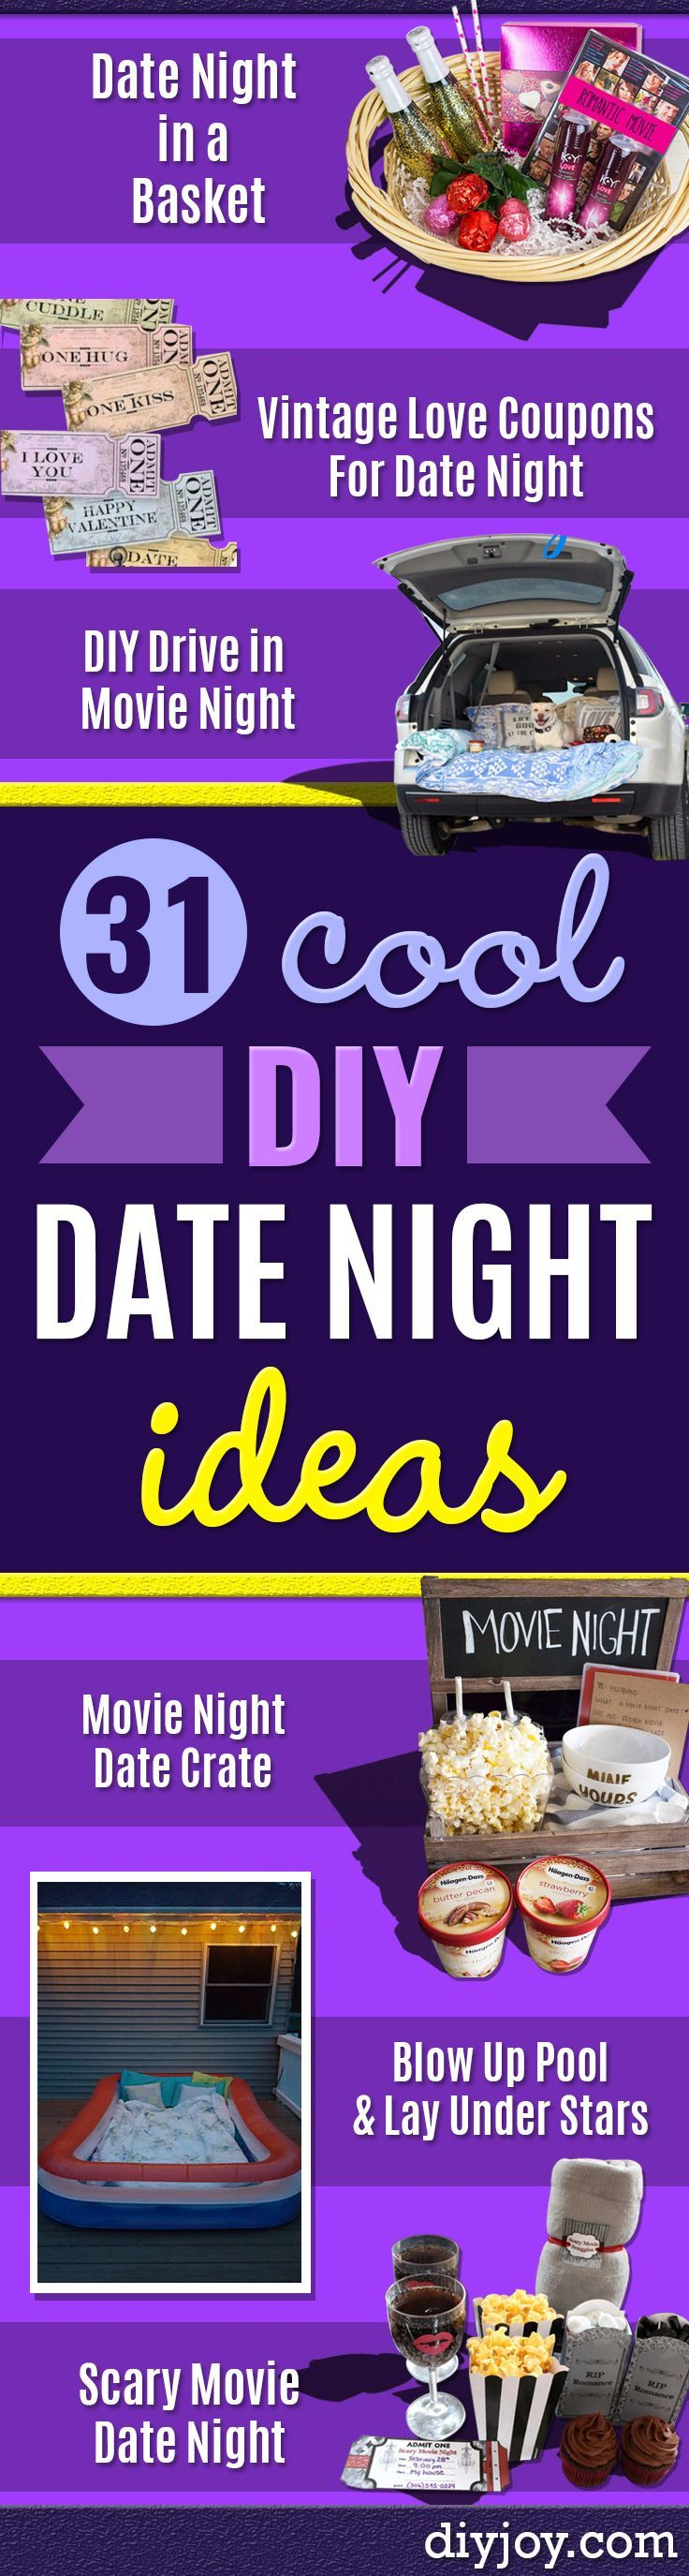 364 best gift ideas for men images on pinterest gift ideas 31 brilliant date night ideas you can act like you thought of yourself we wont tell solutioingenieria Image collections